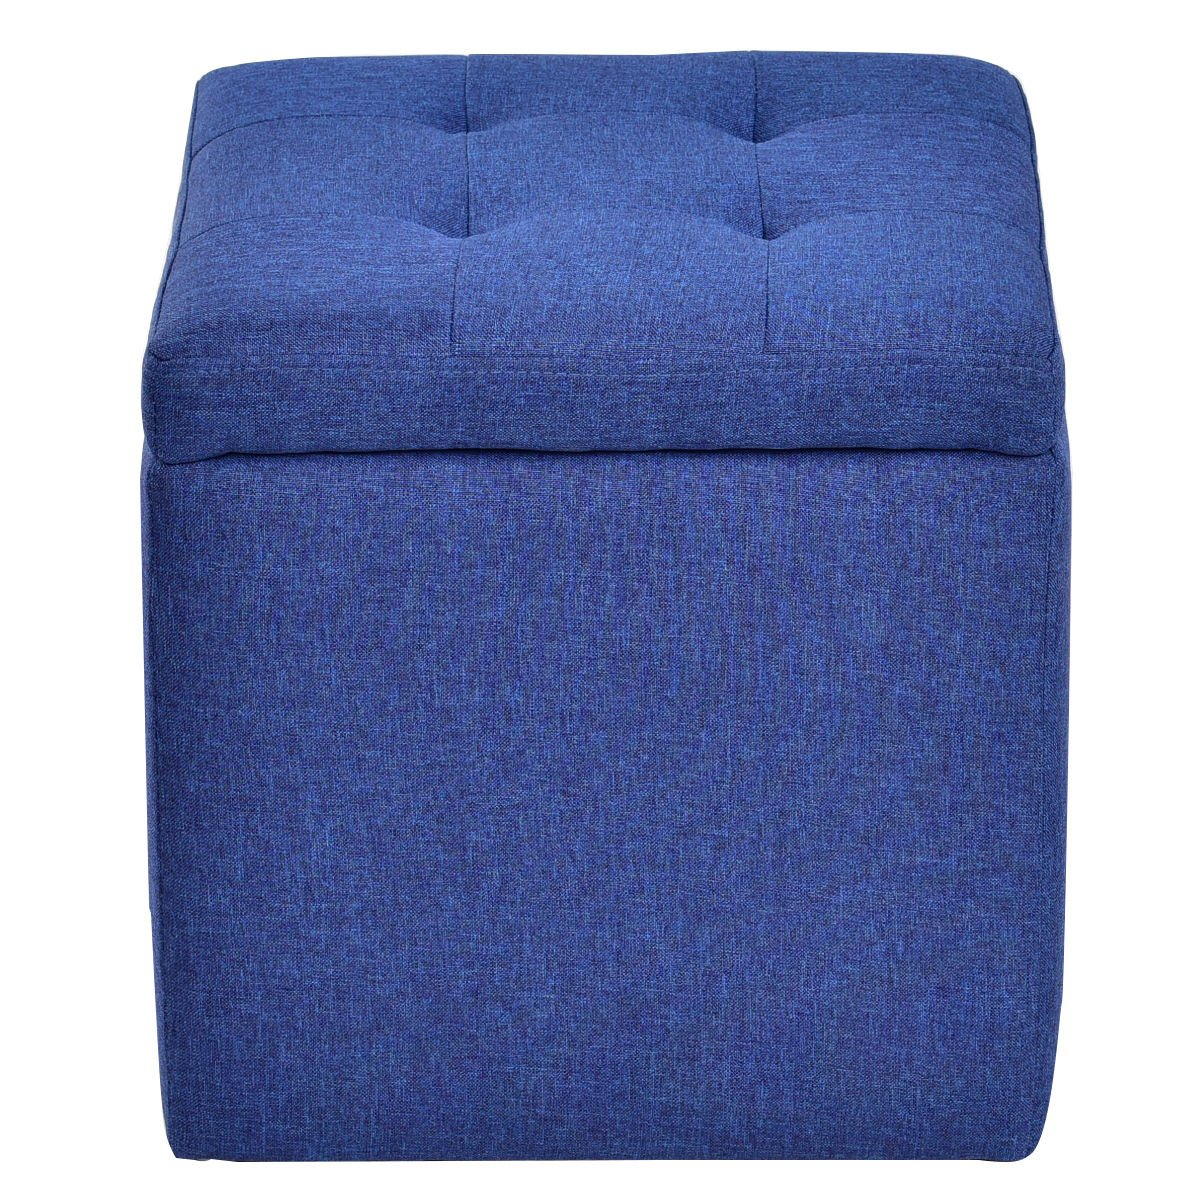 Storage Ottoman Square Seat Foot Stool Living Room Chair Cube Footstools Blue by Ottoman